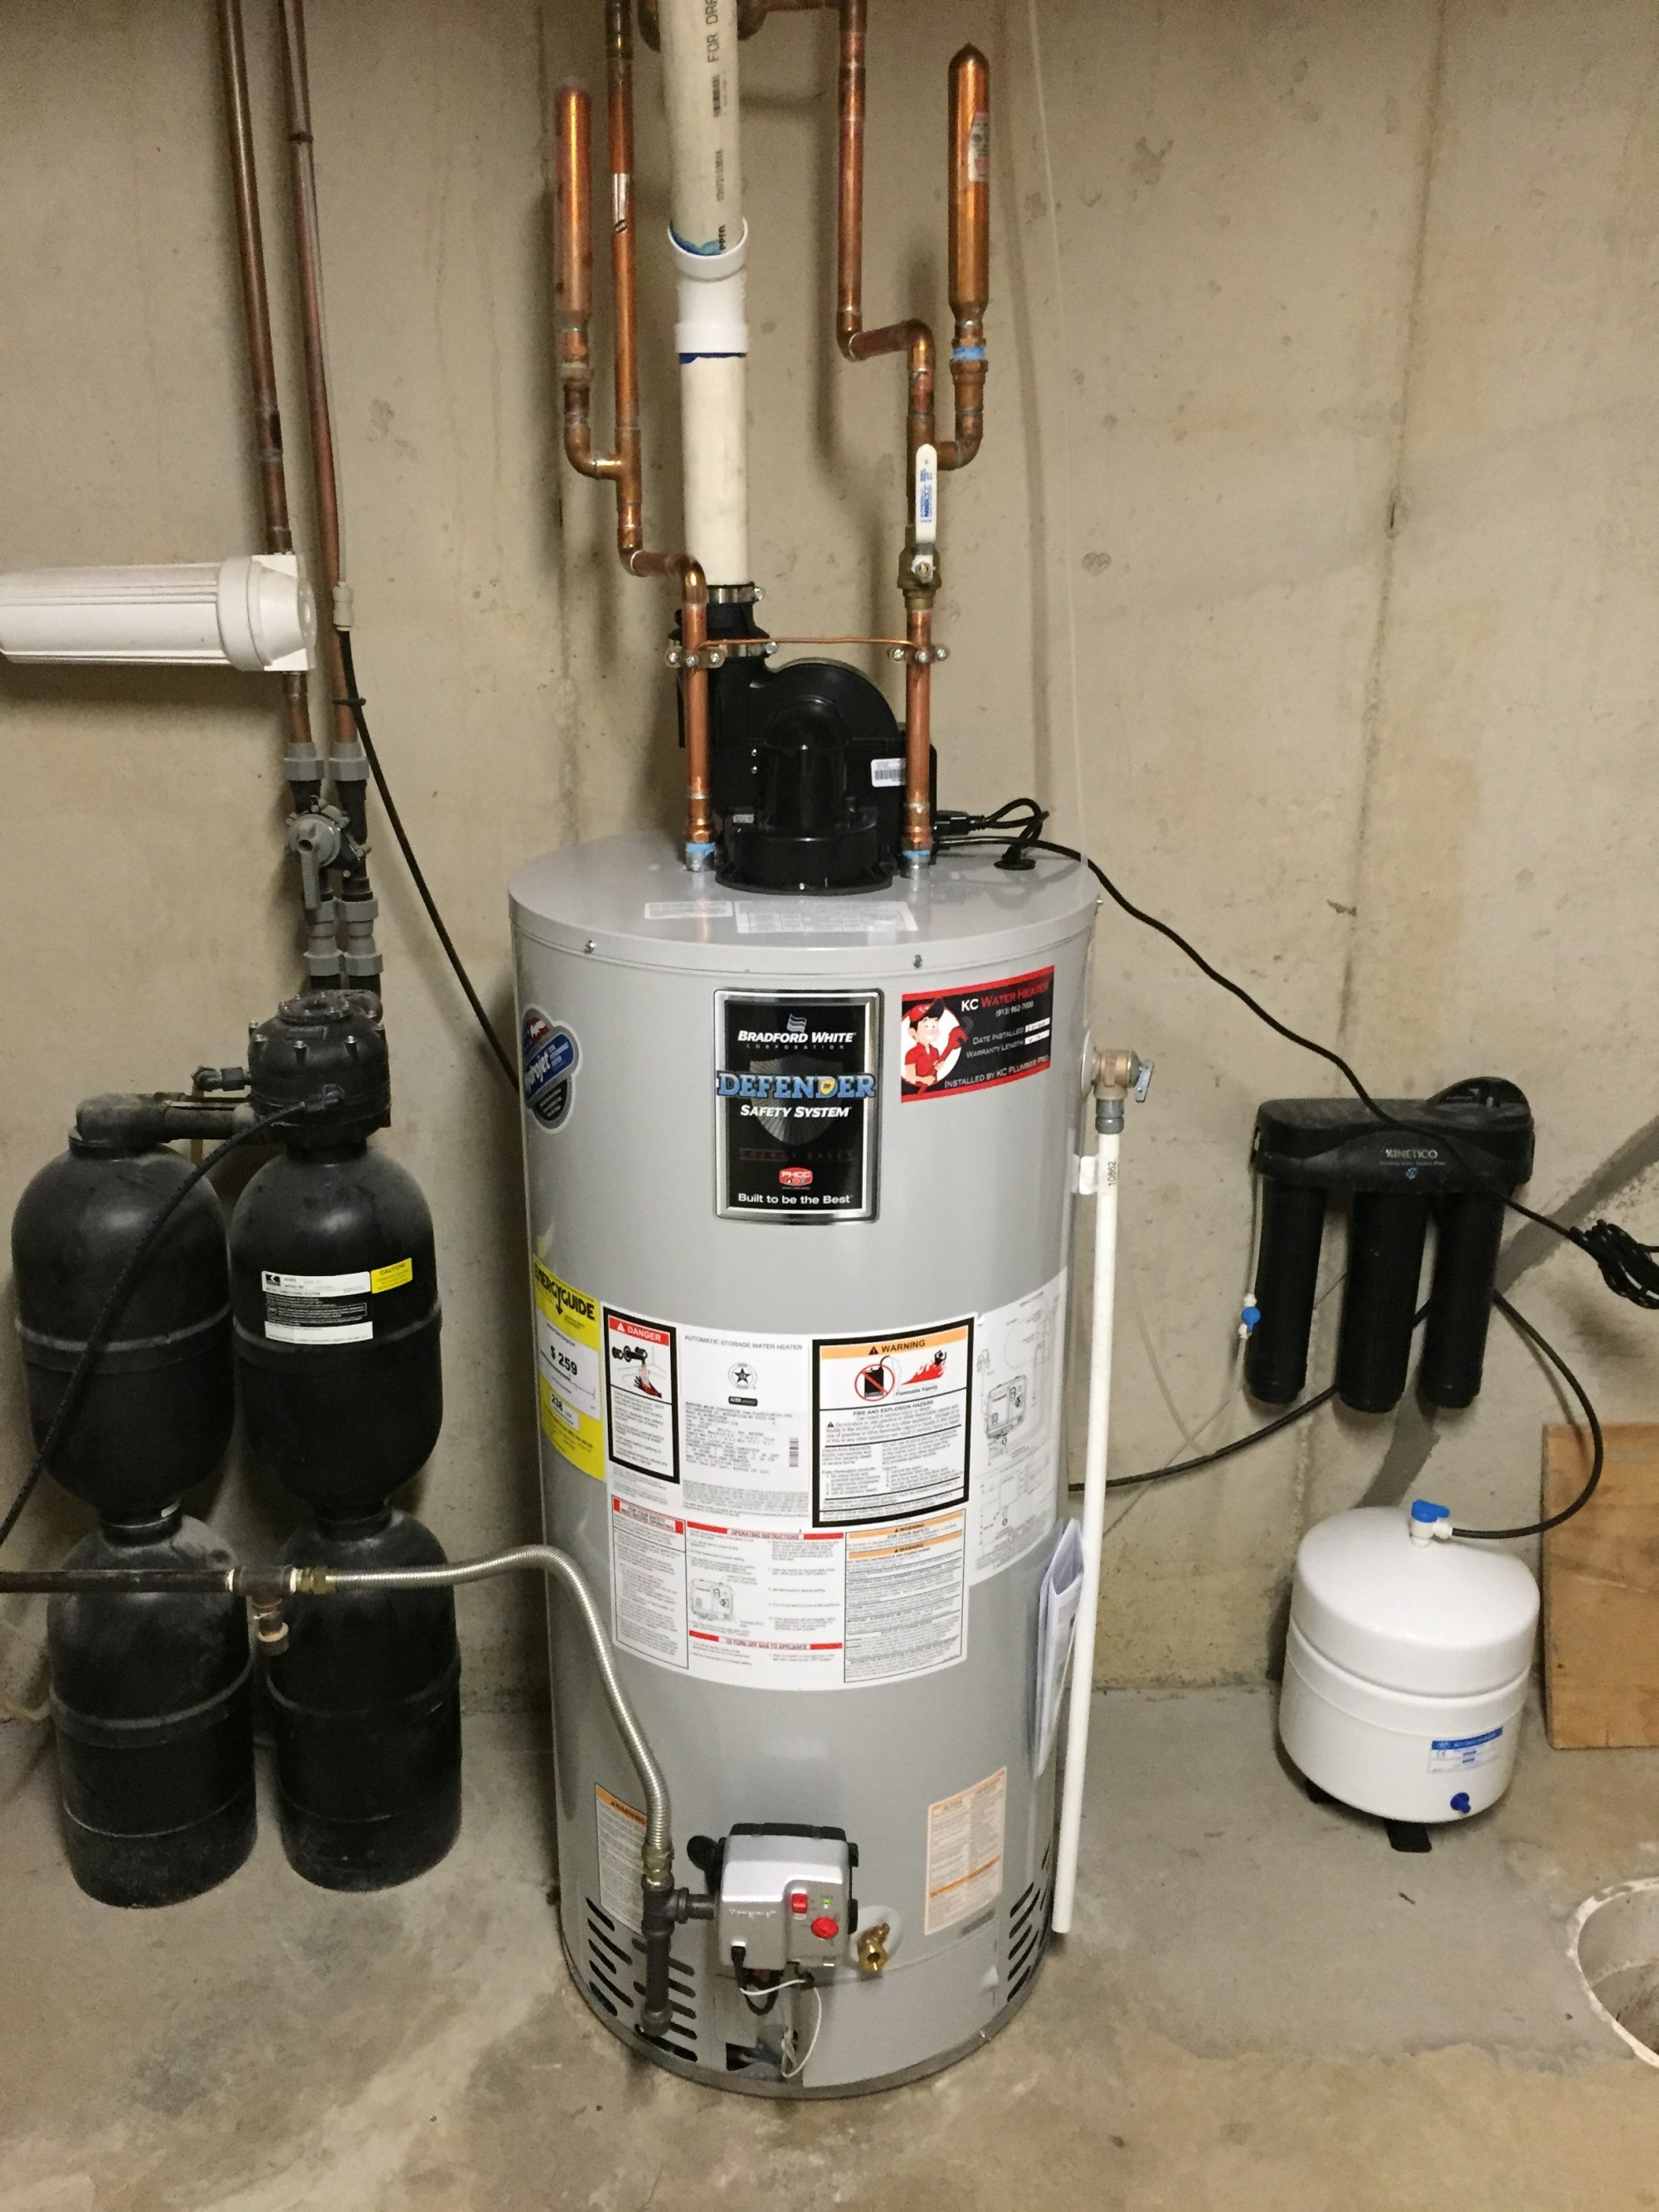 hight resolution of power vent water heaters kansas city bradford white power vent water heater e1428983586196 power vent water heaters kansas city ge water heater